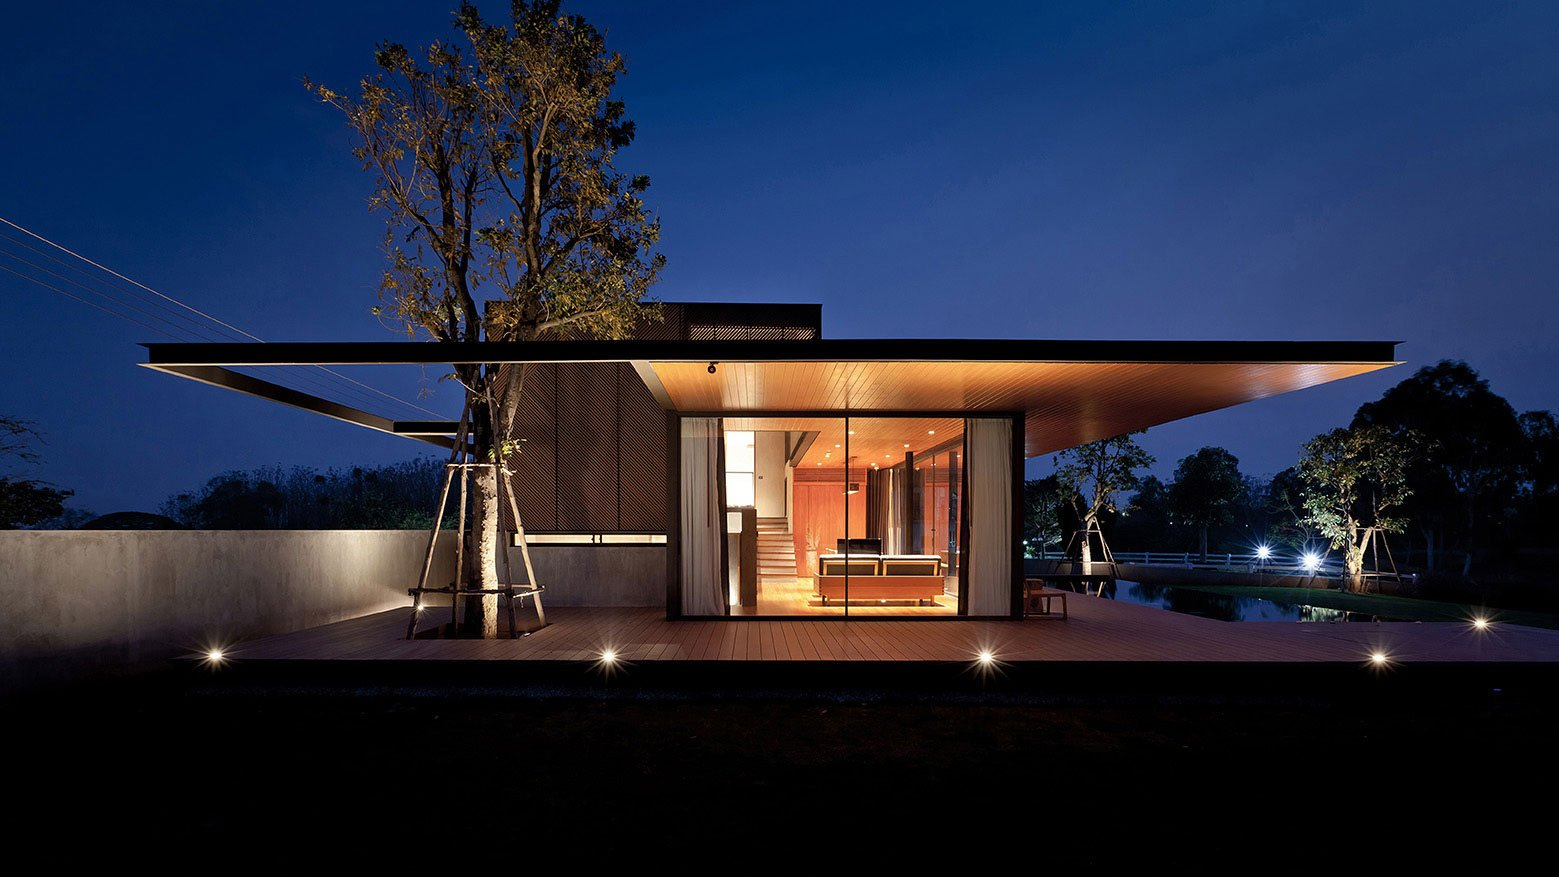 KA Modern house by night